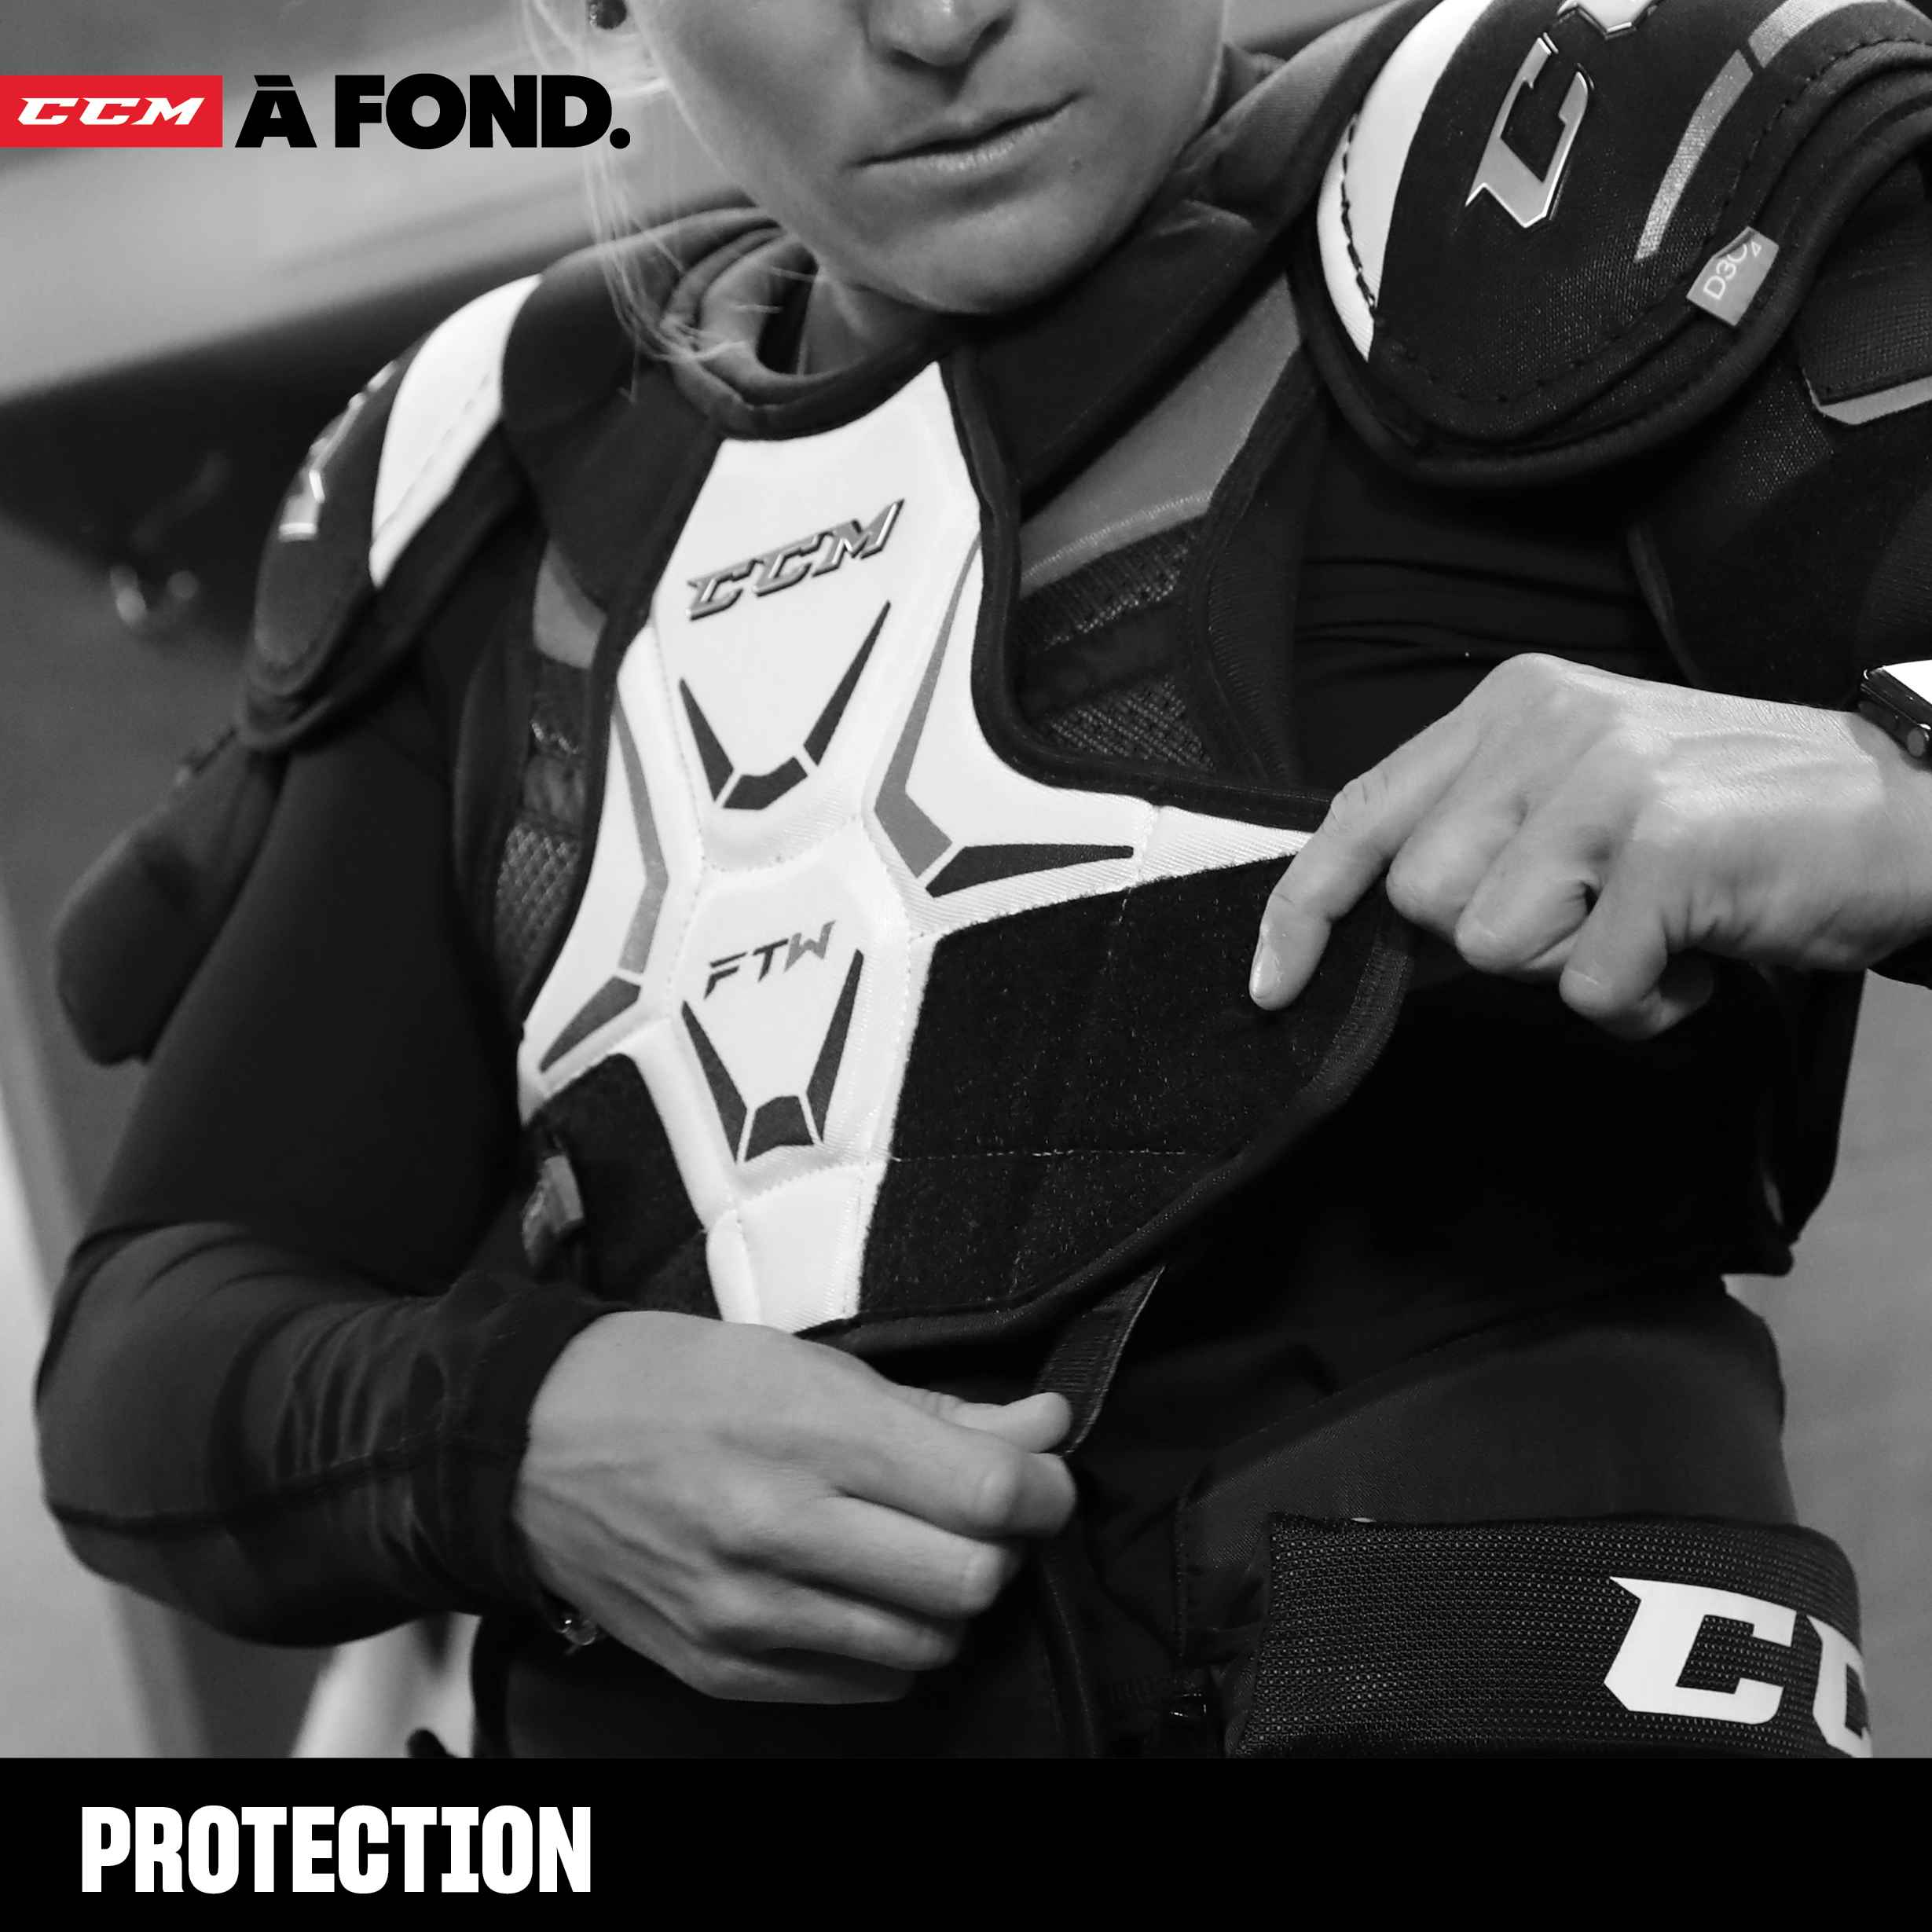 CCM Hockey Protective Including Helmets, Shoulder Pads, Elbow Pads, Shin Pads, & Gloves.